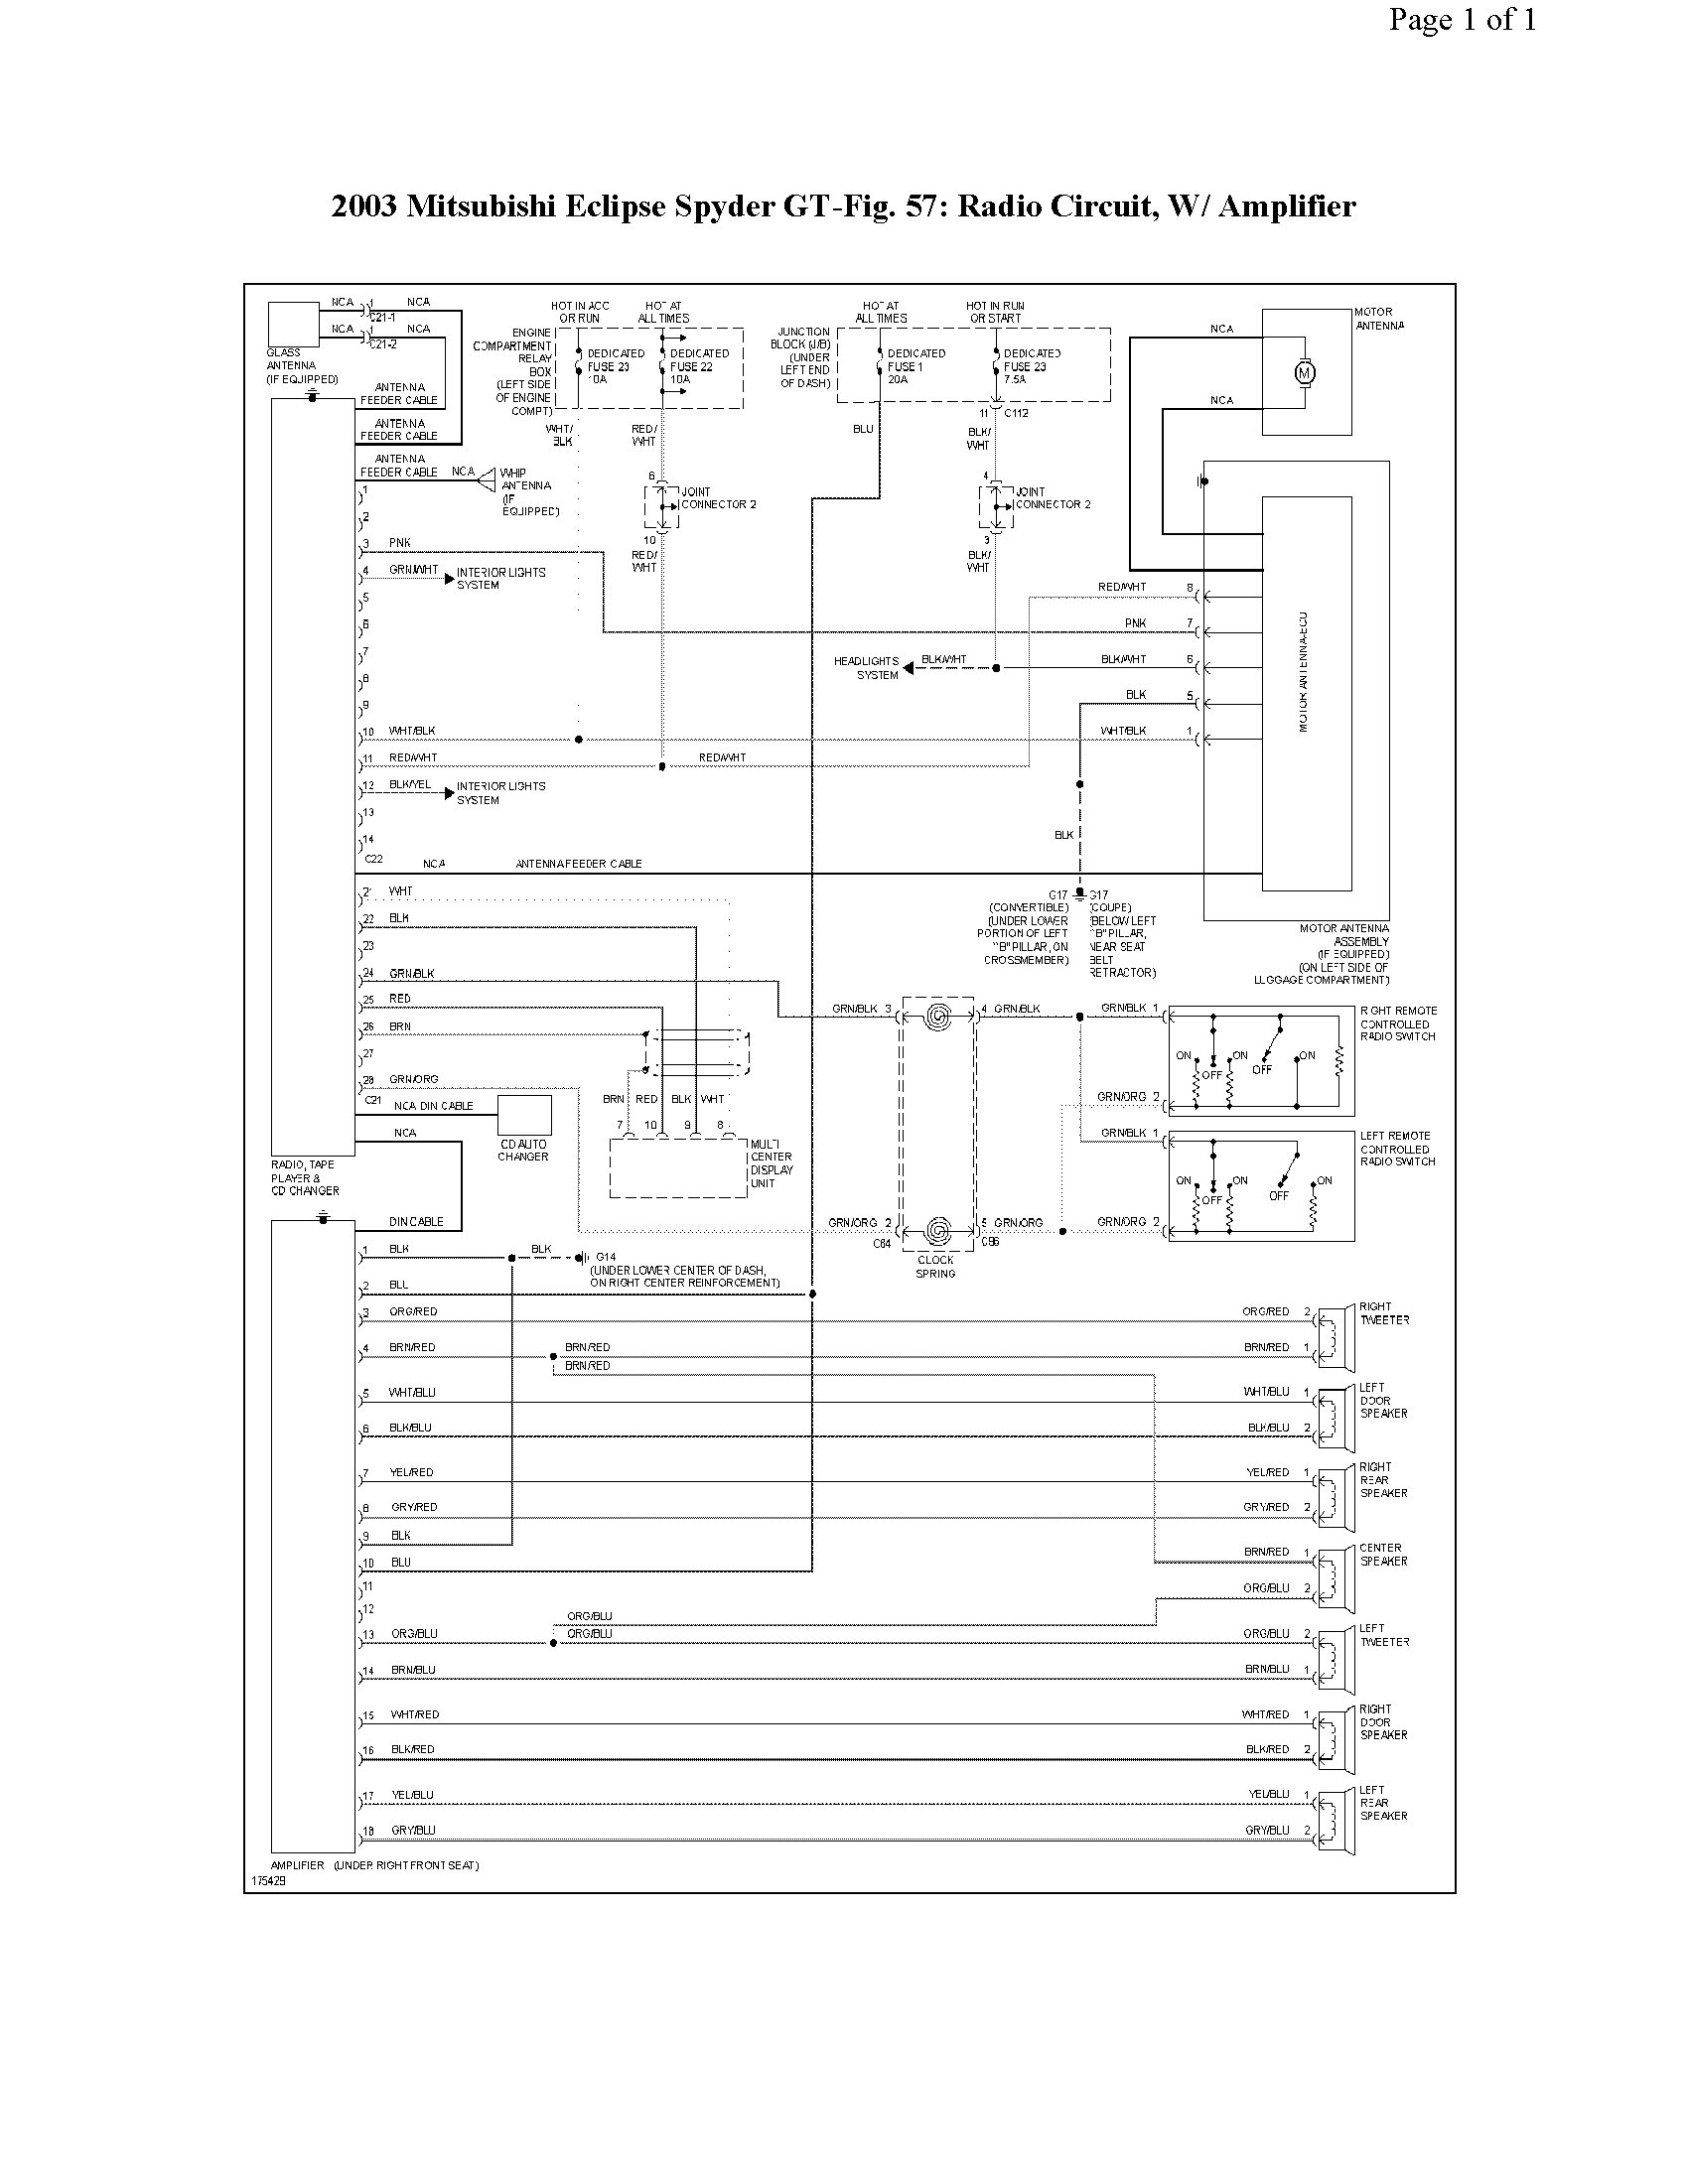 2010 03 16_003830_radiao_w_amp wiring diagram for 2003 mitsubishi eclipse readingrat net wiring diagram for 2003 mitsubishi lancer at crackthecode.co